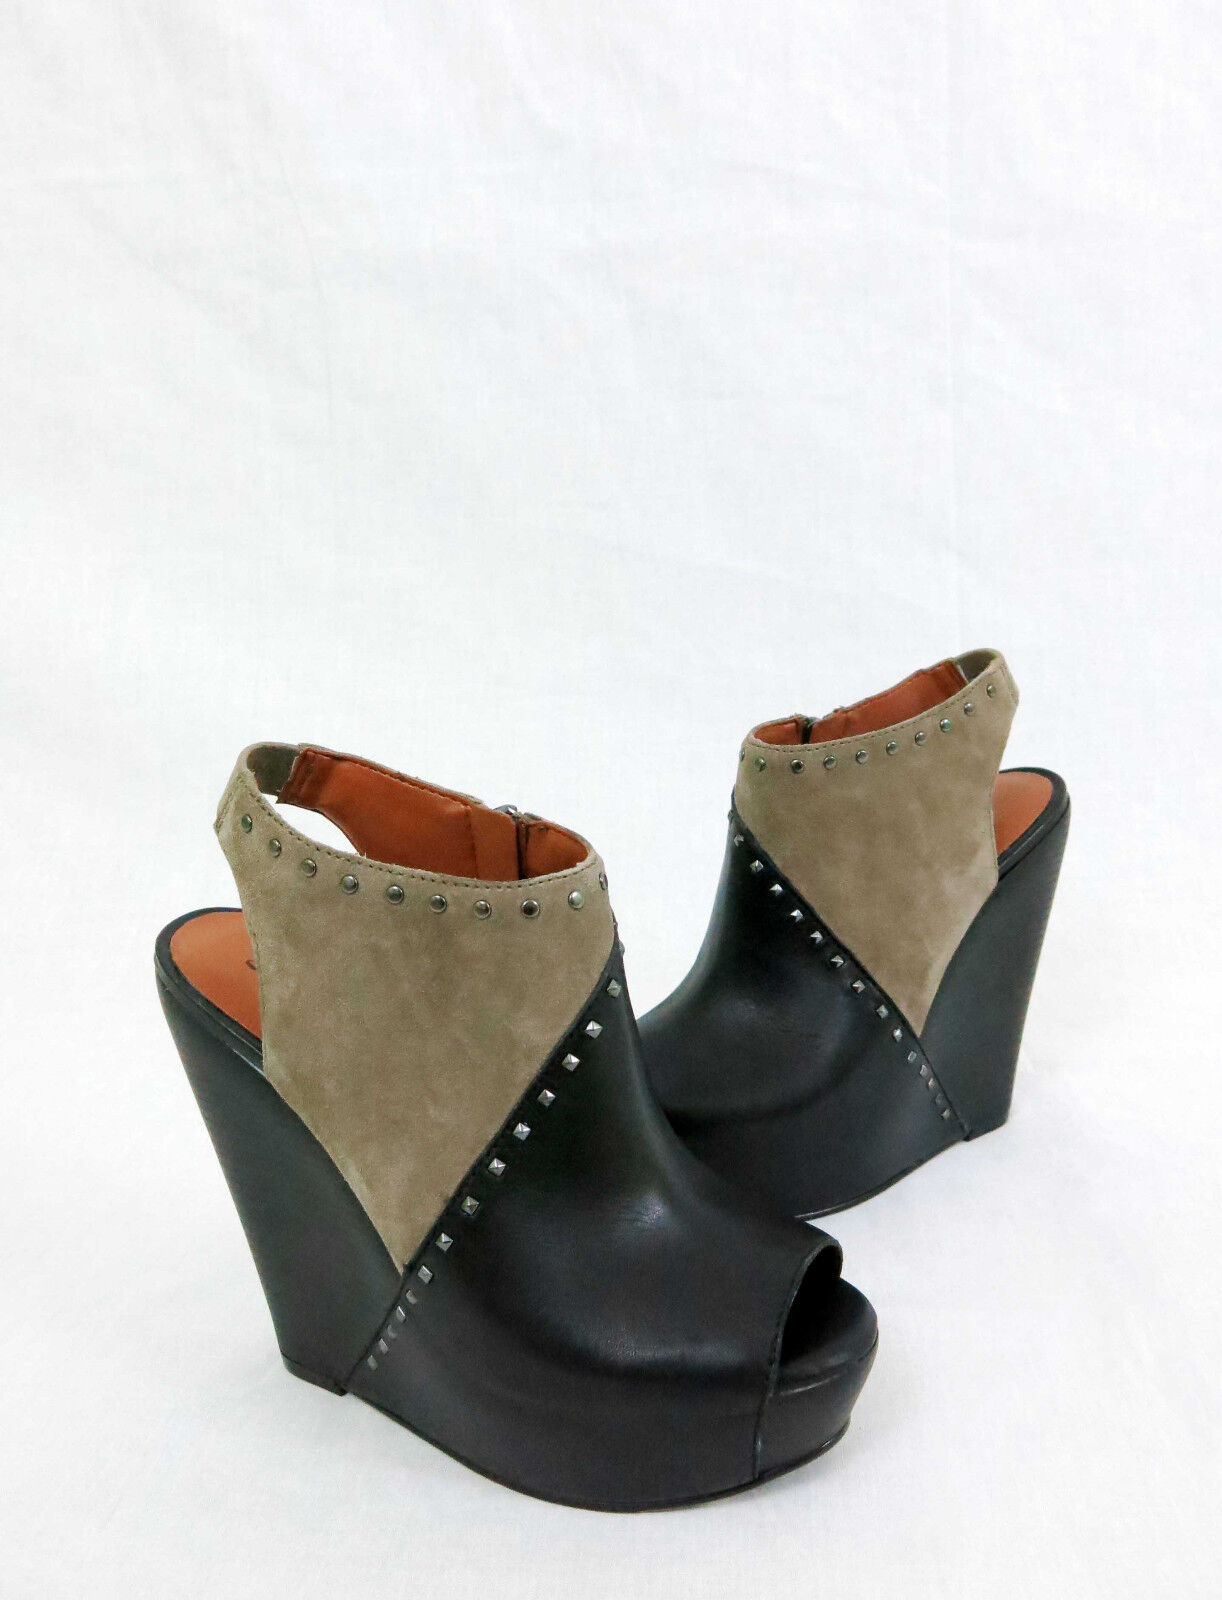 LUCKY BRAND Ramona Wedge Sandals Leather Leather Leather Suede Studs Black Brindle 8.5 e6a3b5